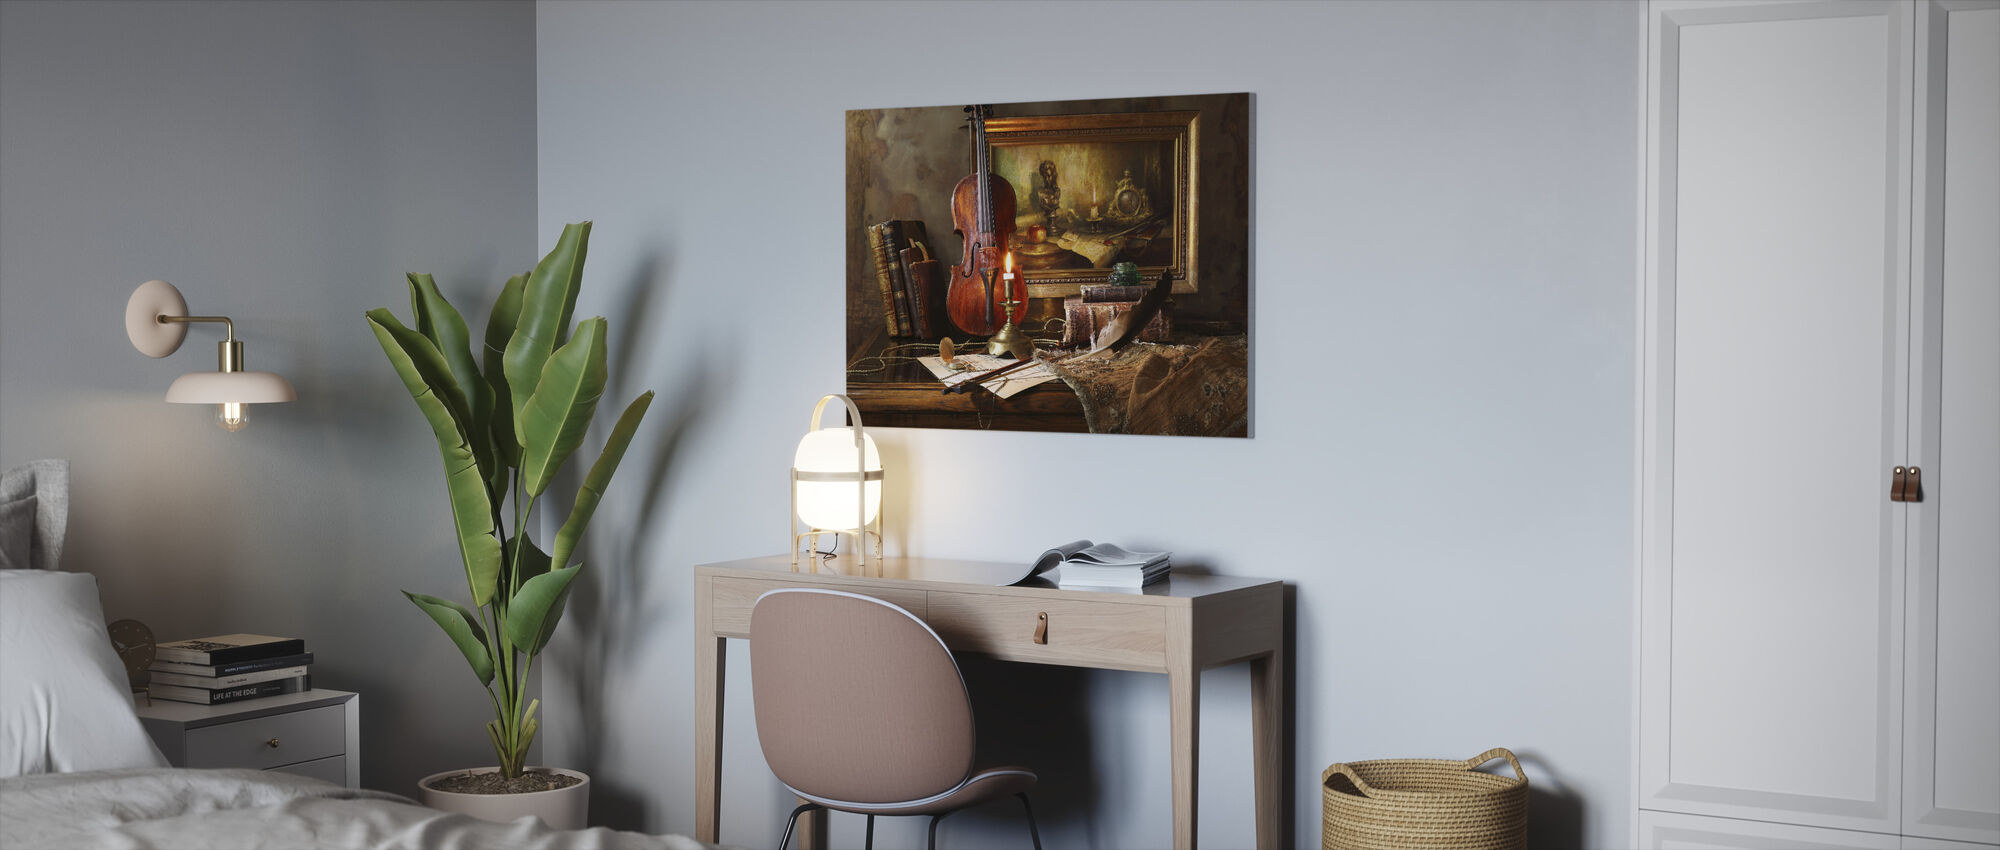 Still Life with Violin and Painting - Canvas print - Office